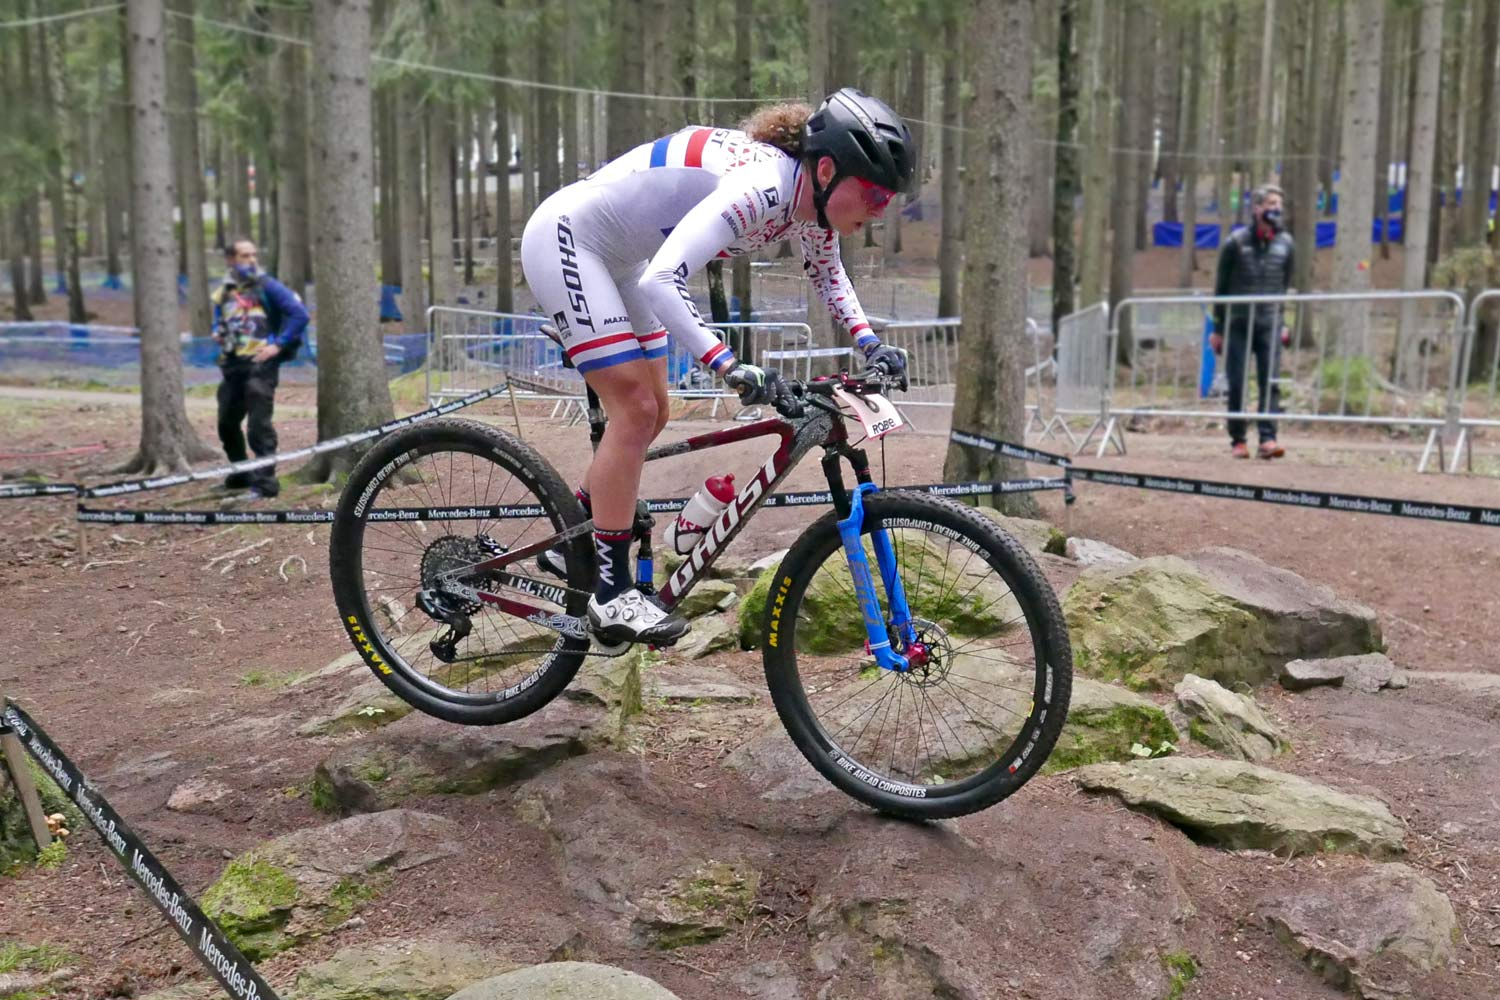 prototype Ghost Lector FS XC bike, full suspension cross-country mountain bike, Nove Mesto World Cup, Anne Terpstra Rock 'n Roll